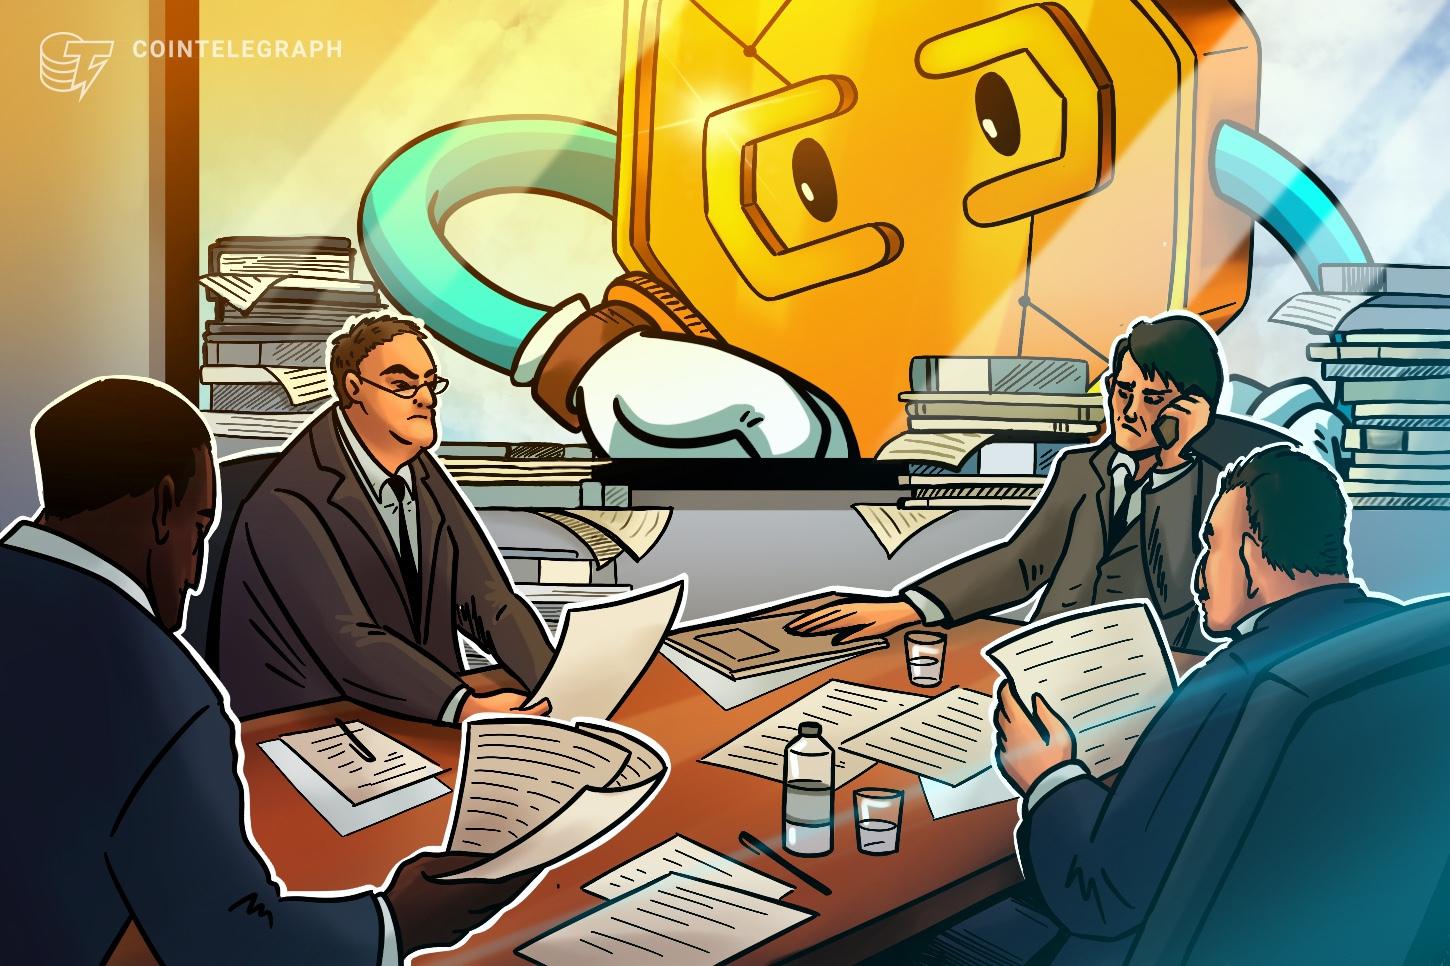 Regulator interest is good for the crypto ecosystem, says BlockFi CEO